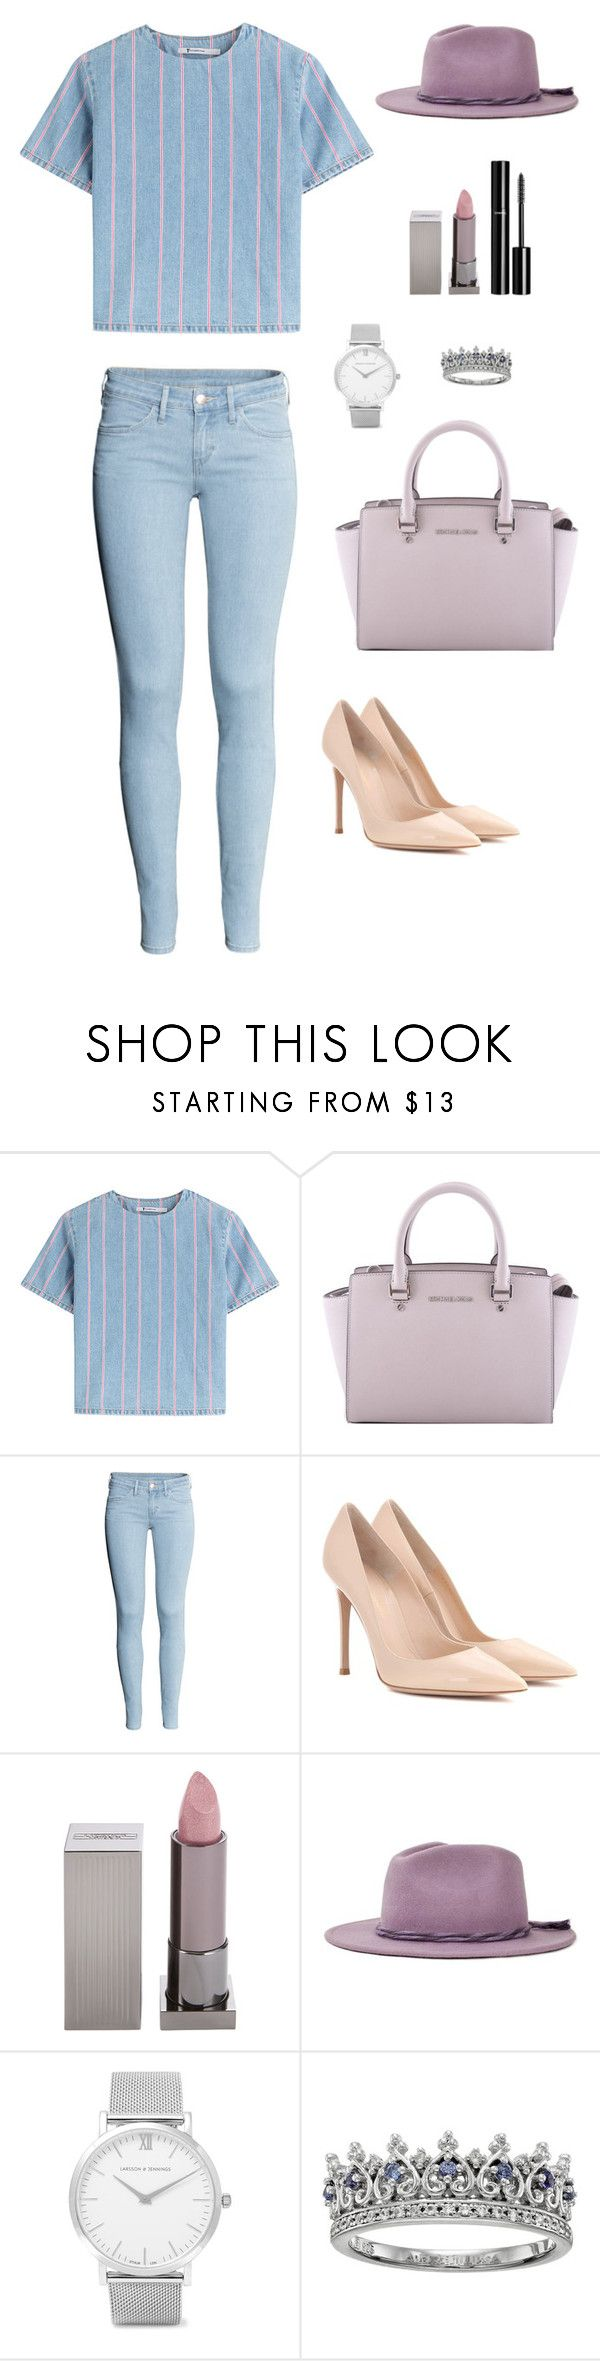 """Untitled #286"" by bajka2468 ❤ liked on Polyvore featuring T By Alexander Wang, MICHAEL Michael Kors, H&M, Gianvito Rossi, Lipstick Queen, Chanel, Brixton and Larsson & Jennings"